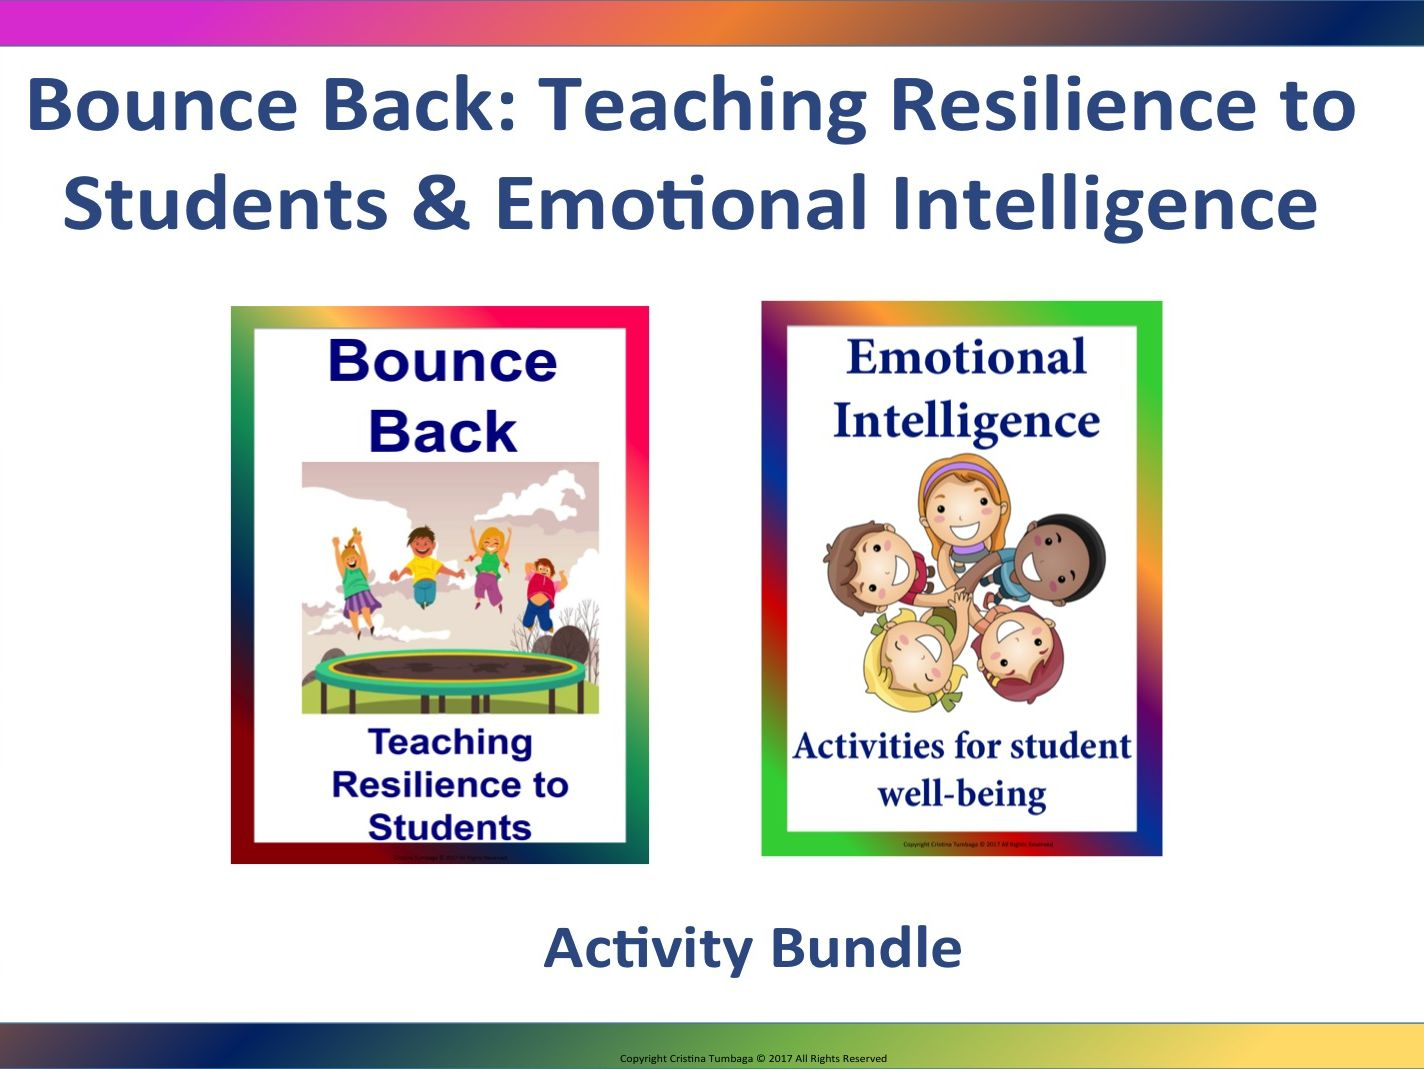 Bounce Back: Teaching Resilience & Emotional Intelligence